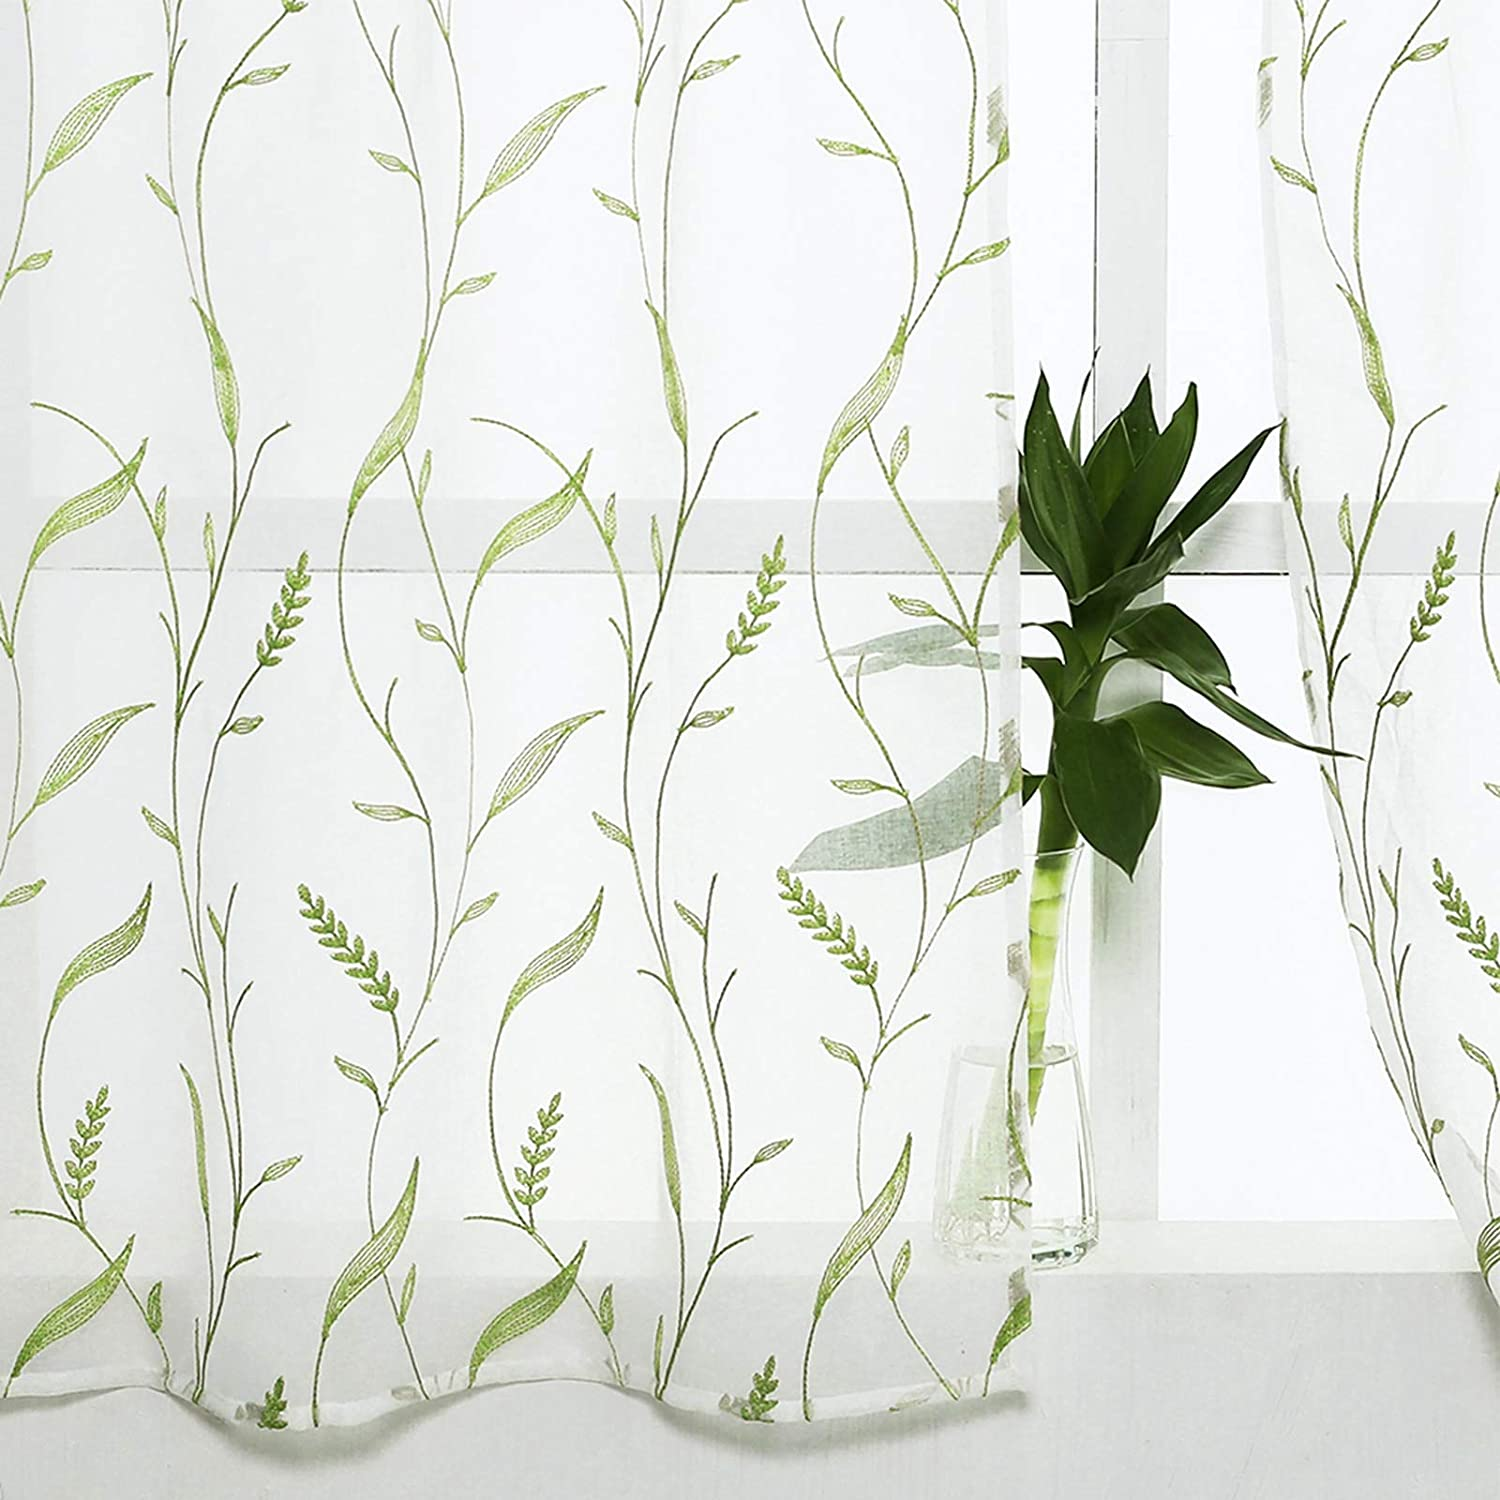 Leaves Embroiedry Sheer Valance Curtain 16 inches Long Valances Wheat Spike Embroidered Curtains Valances Living Room Bedroom Voile Rod Pocket Window Treatment 1 Panel Green Wheat Spike on White